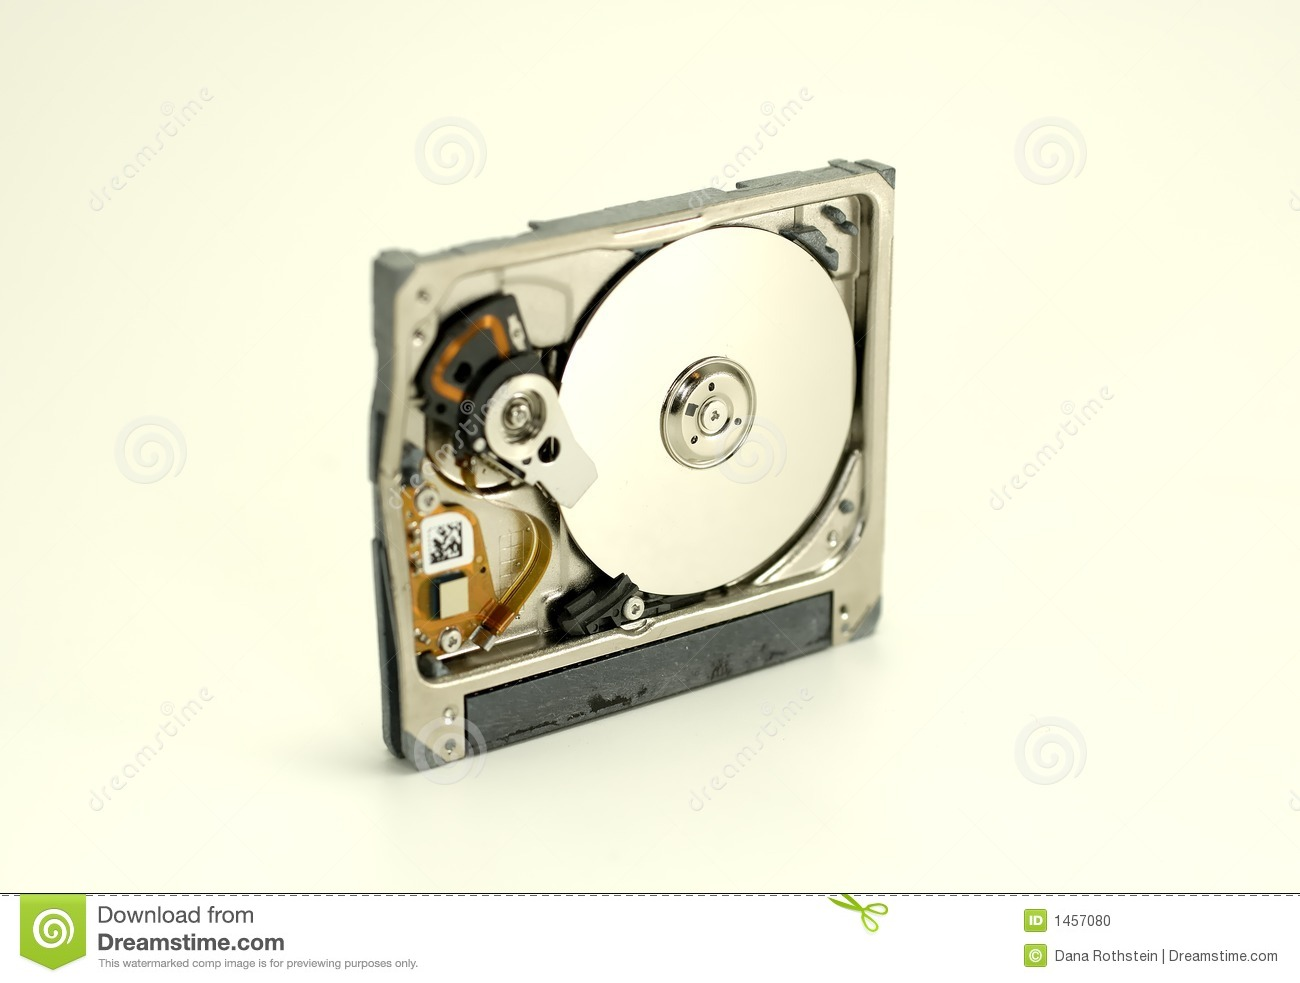 how to fry a computer hard drive